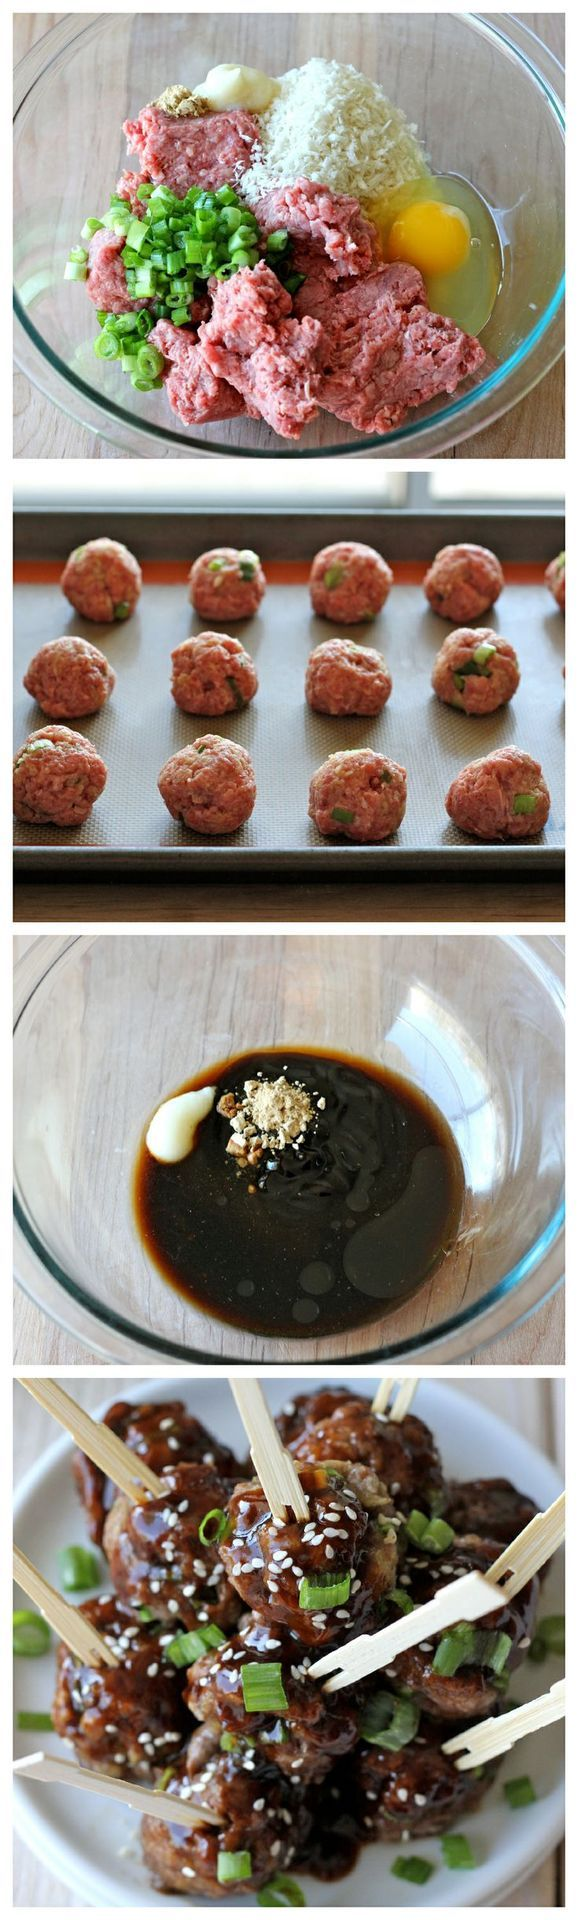 Hoisin Asian Meatballs - These juicy tender meatballs are smotheredwith a sweet Hoisin glaze!